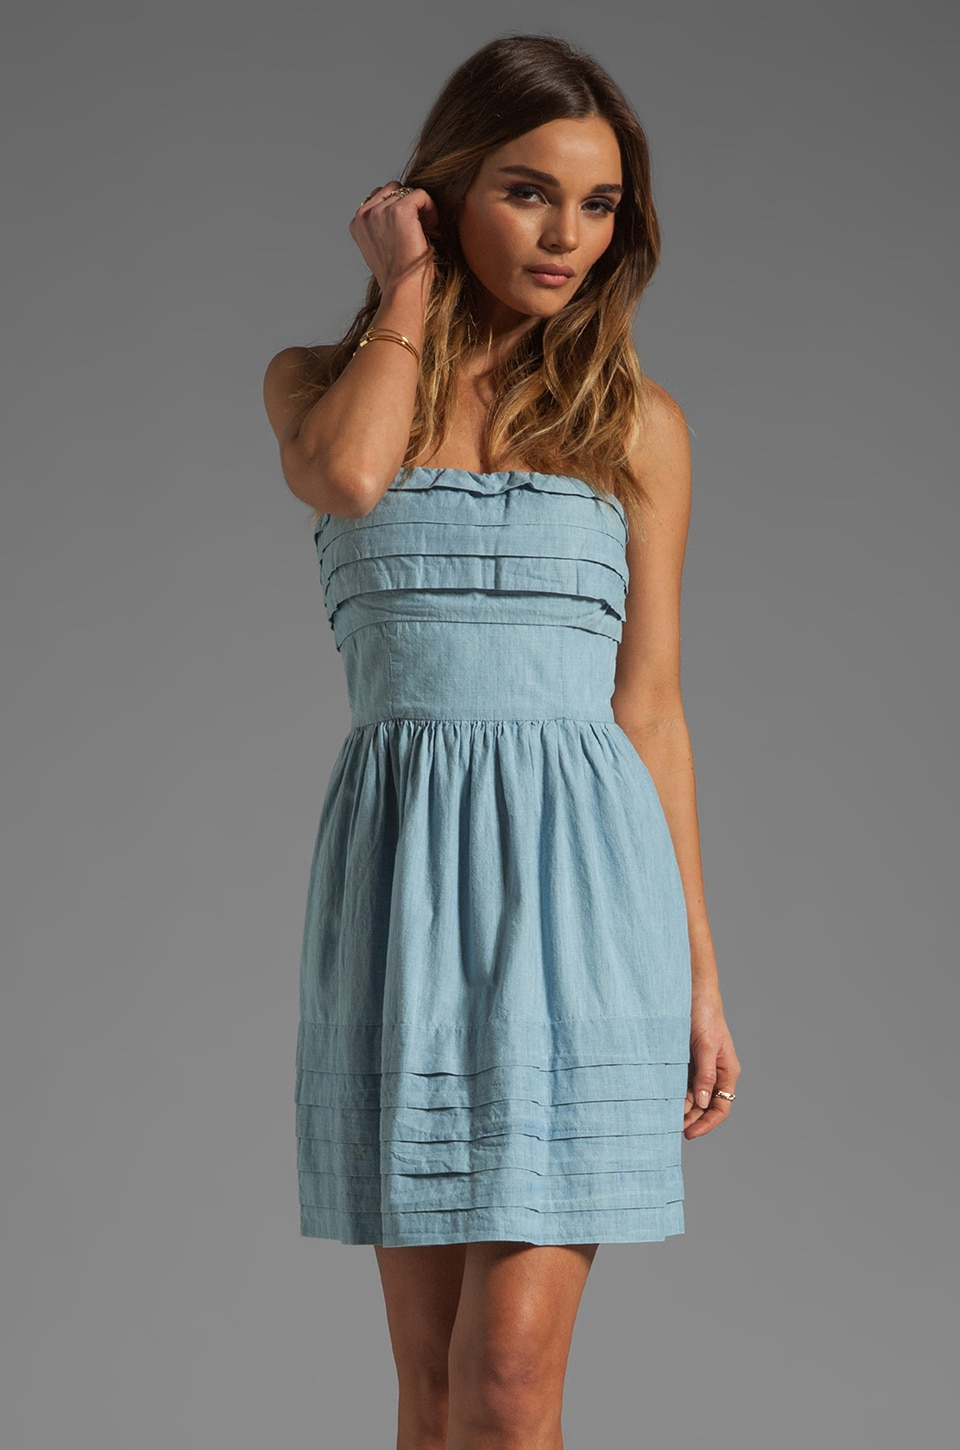 BB Dakota Emiley Cotton Chambray Dress in Light Blue